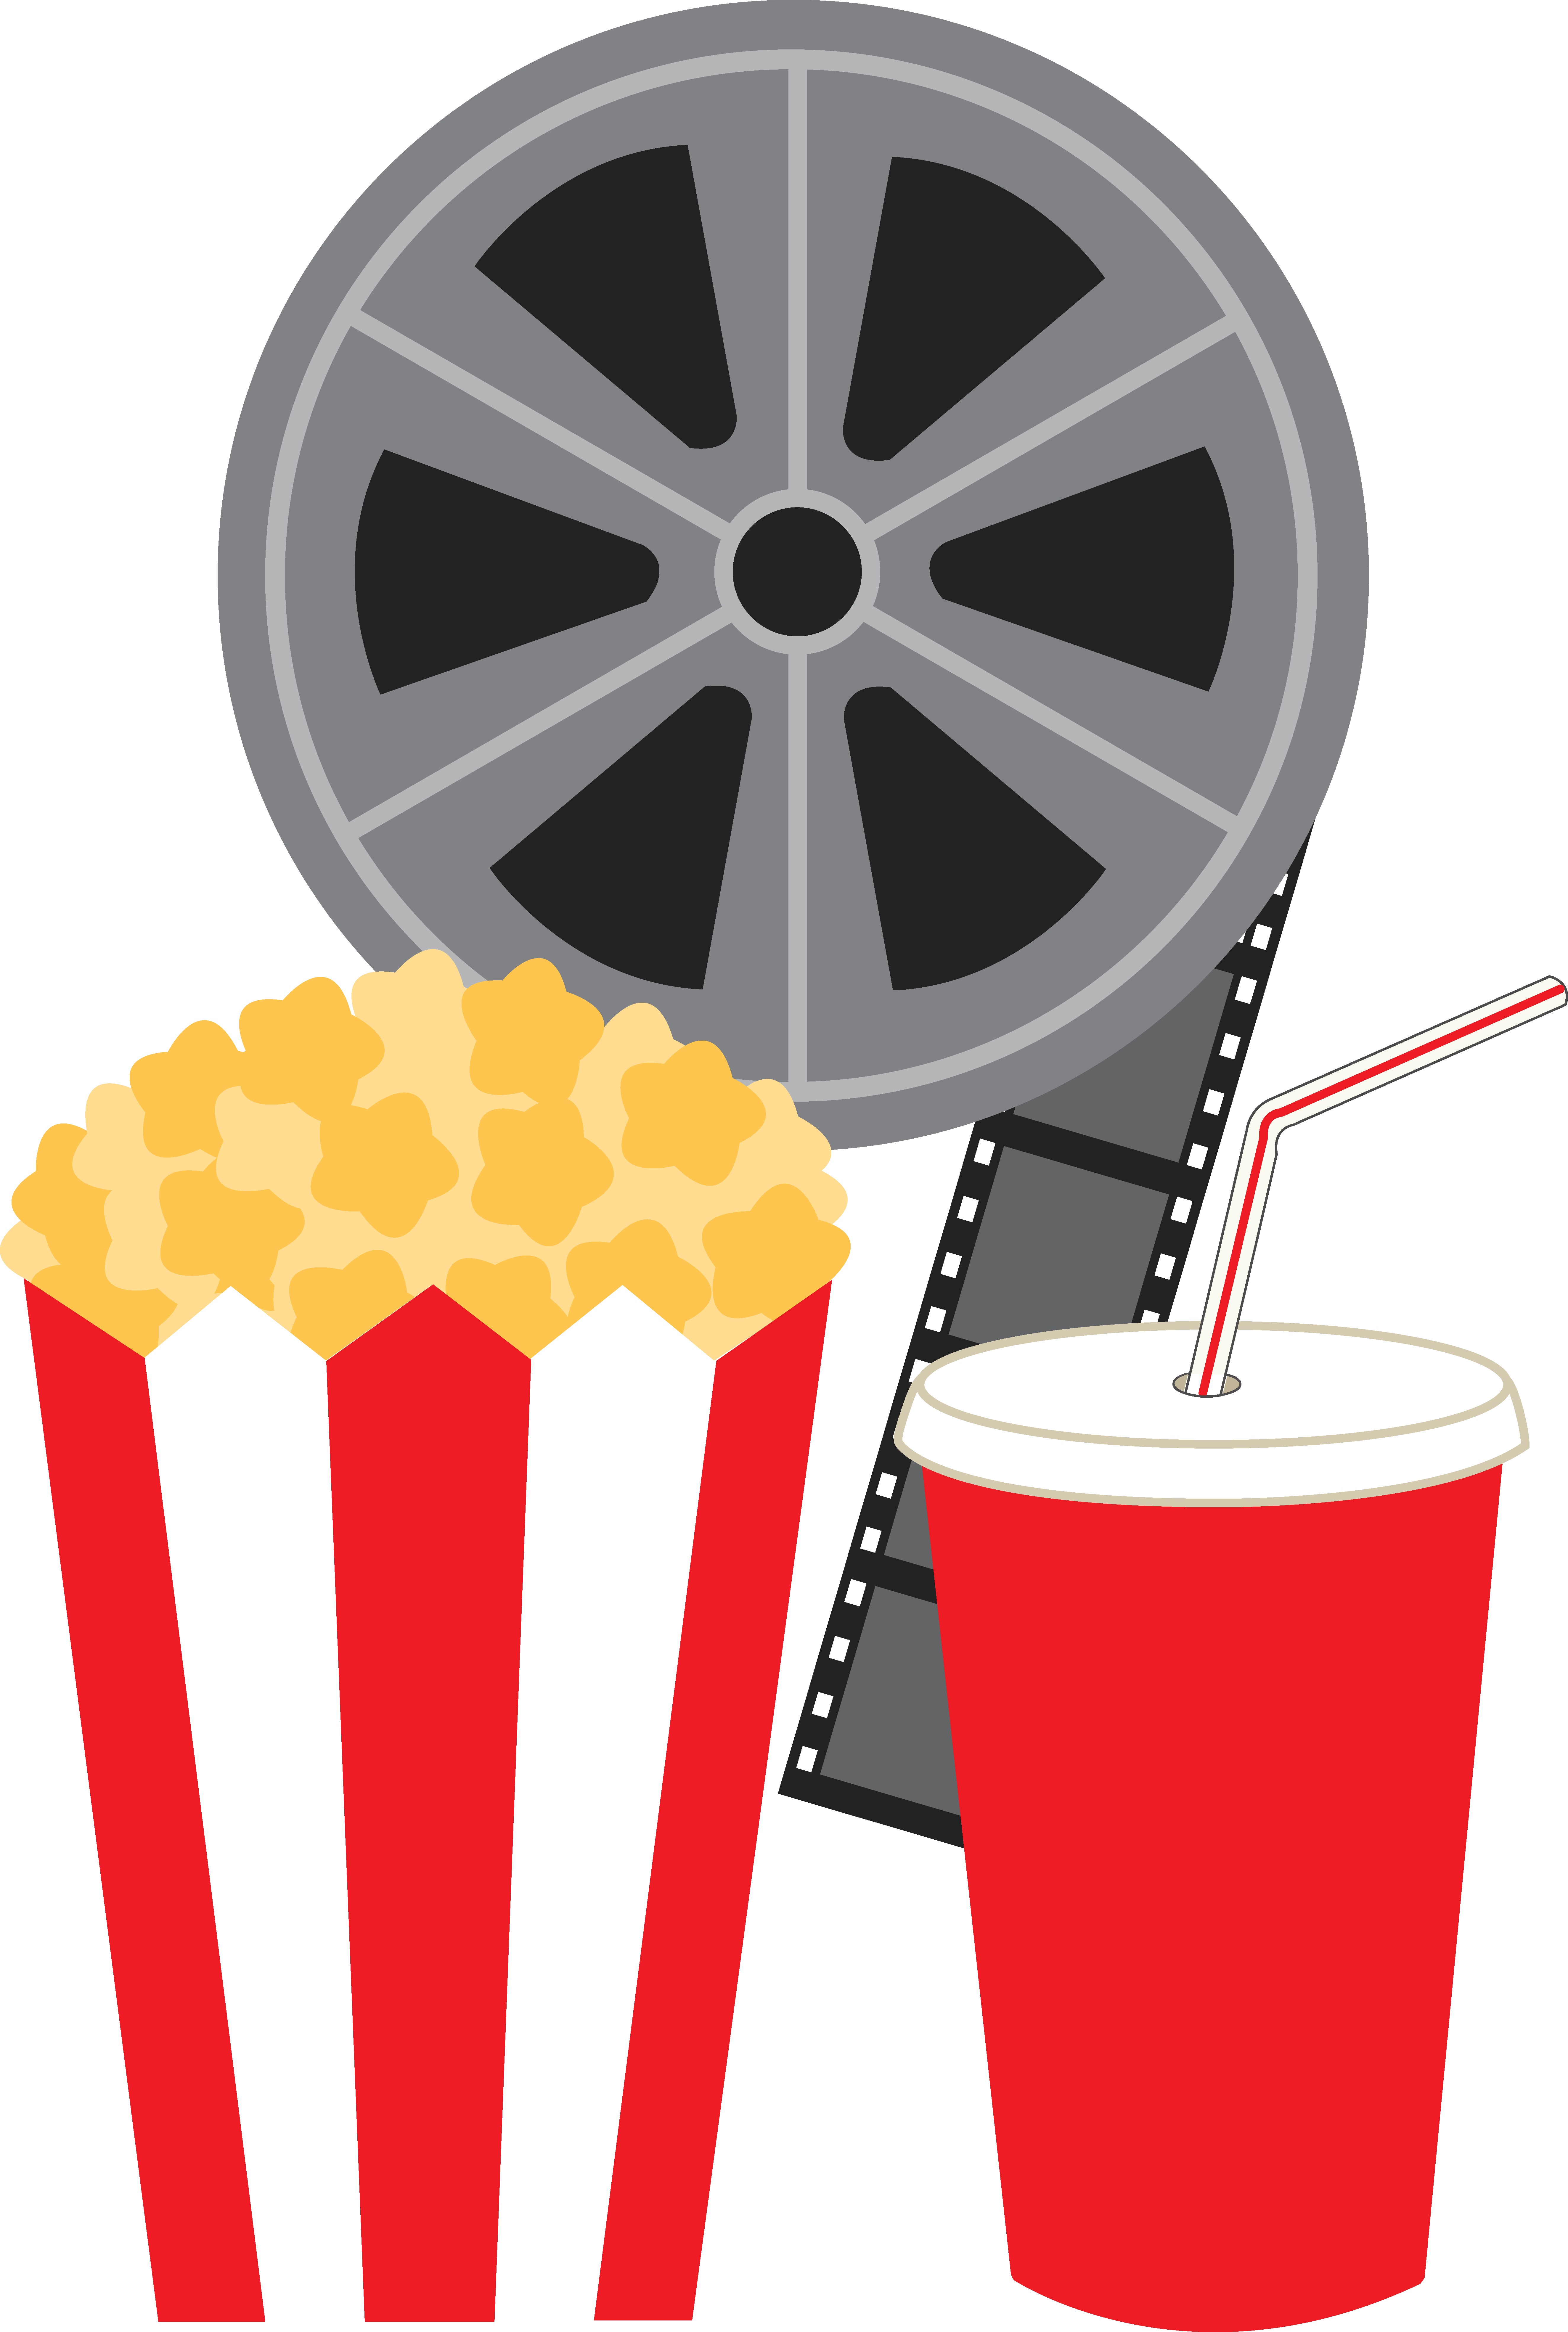 Free Movies Cliparts, Download Free Clip Art, Free Clip Art.